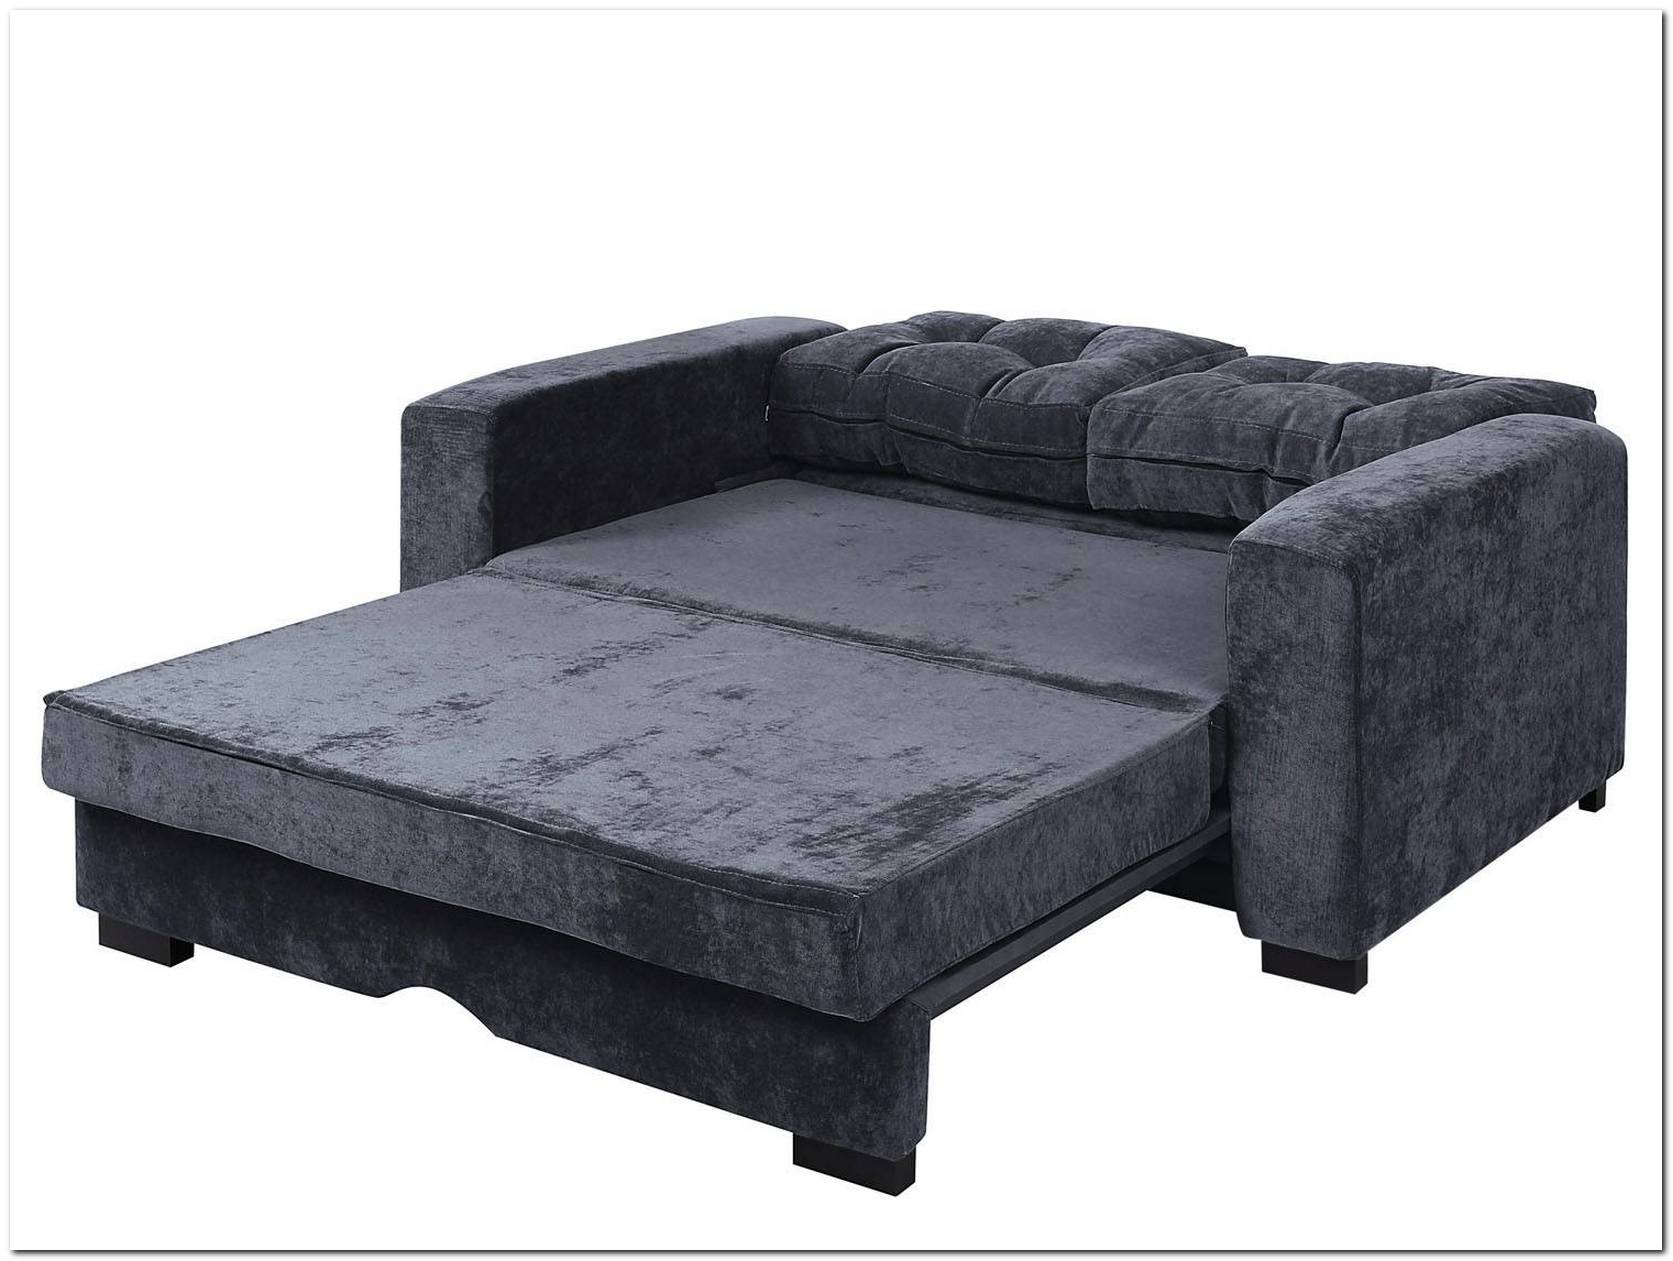 Sofa Cama Venda